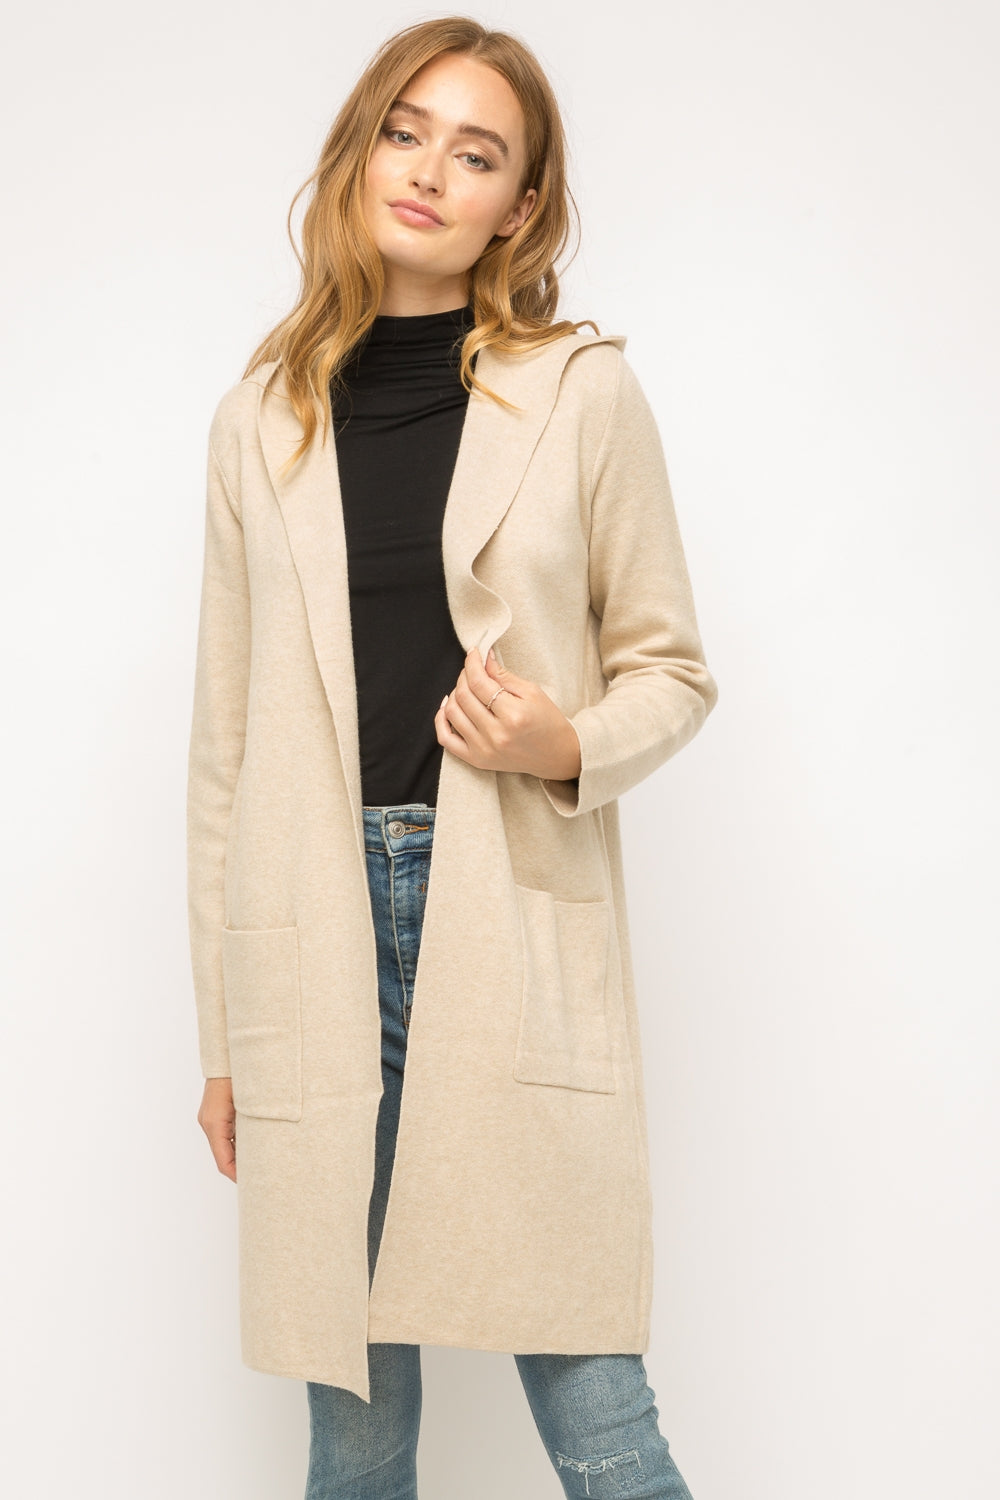 Claire Hooded Cardigan